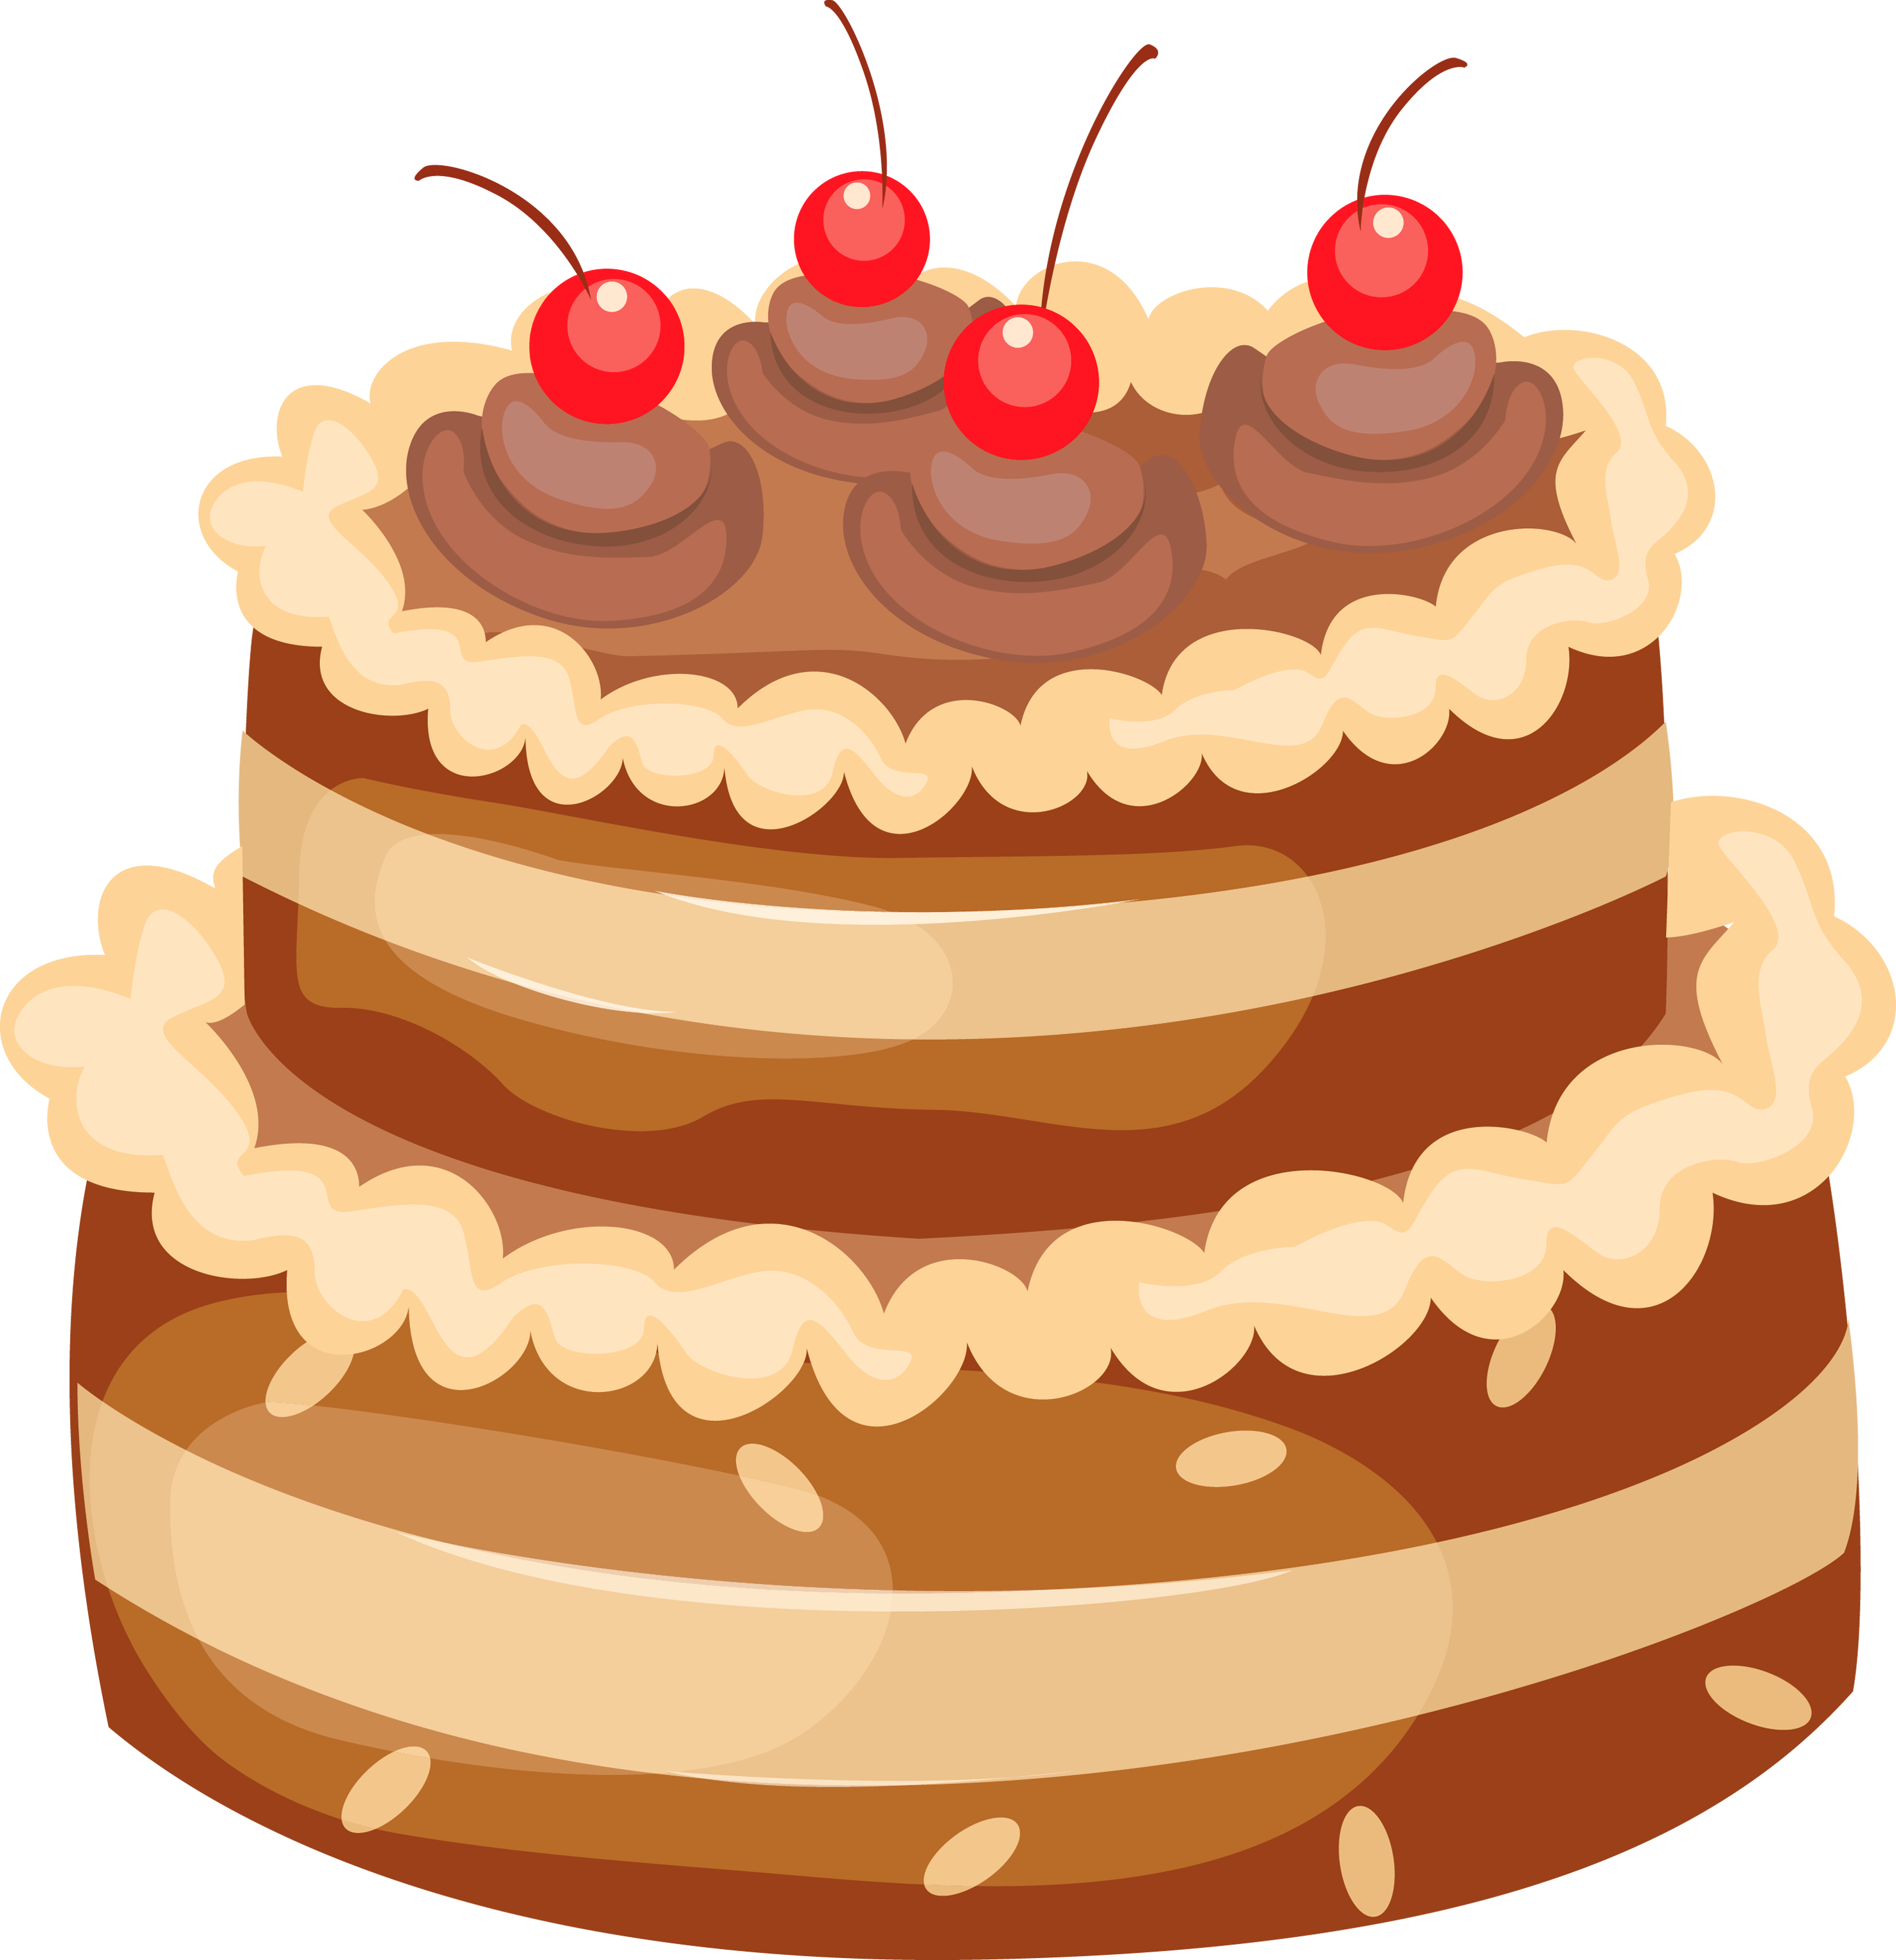 Birthday cake clip art free birthday cake clipart clipartcow